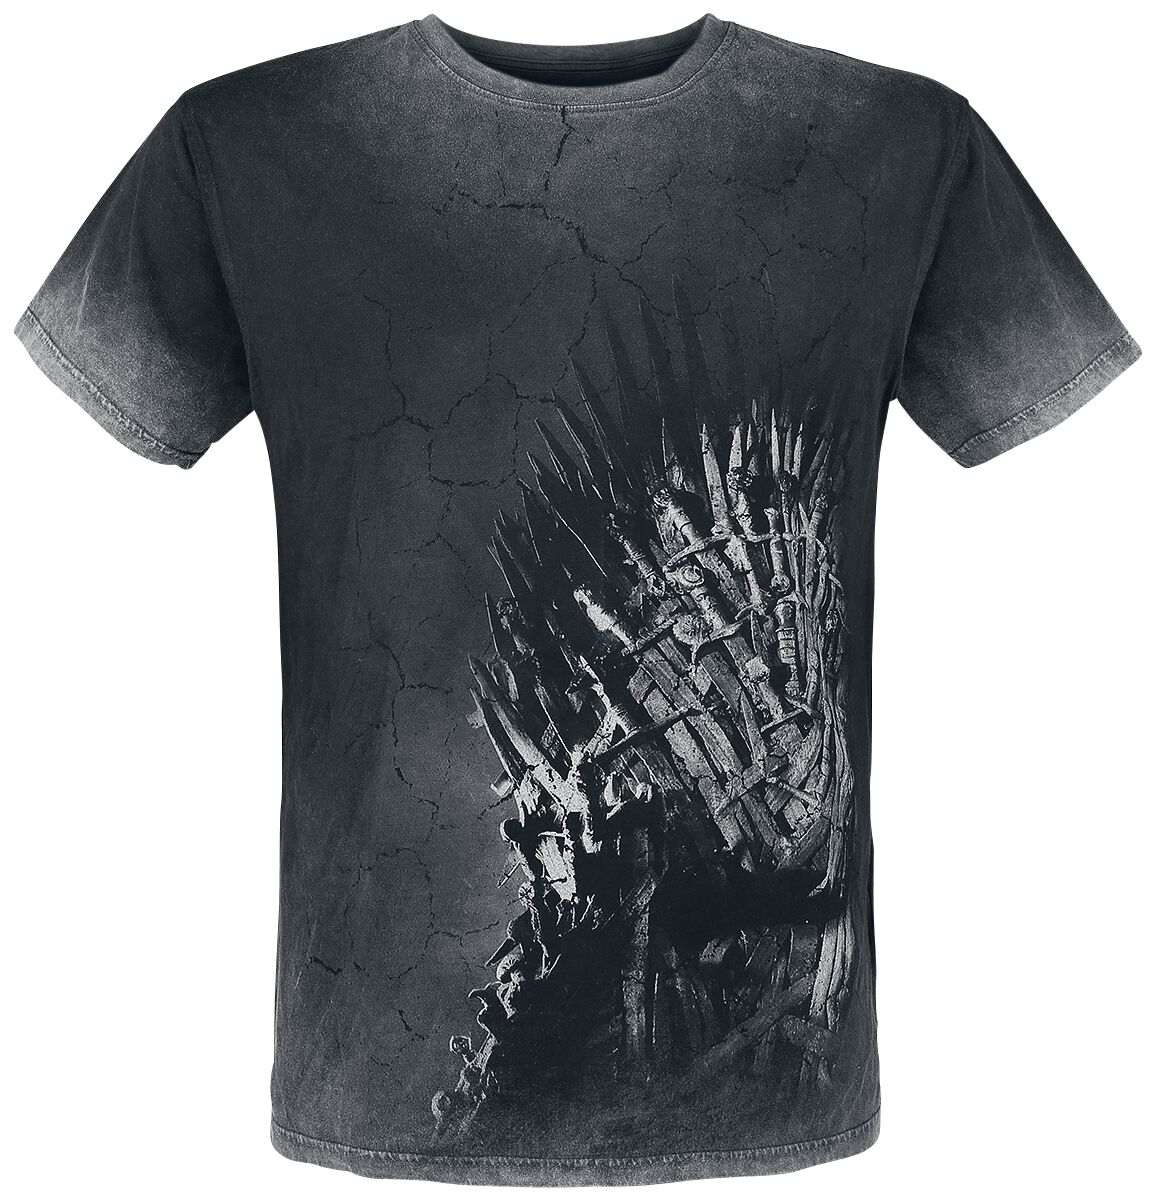 Image of   Game Of Thrones Iron Throne T-Shirt sort-grå